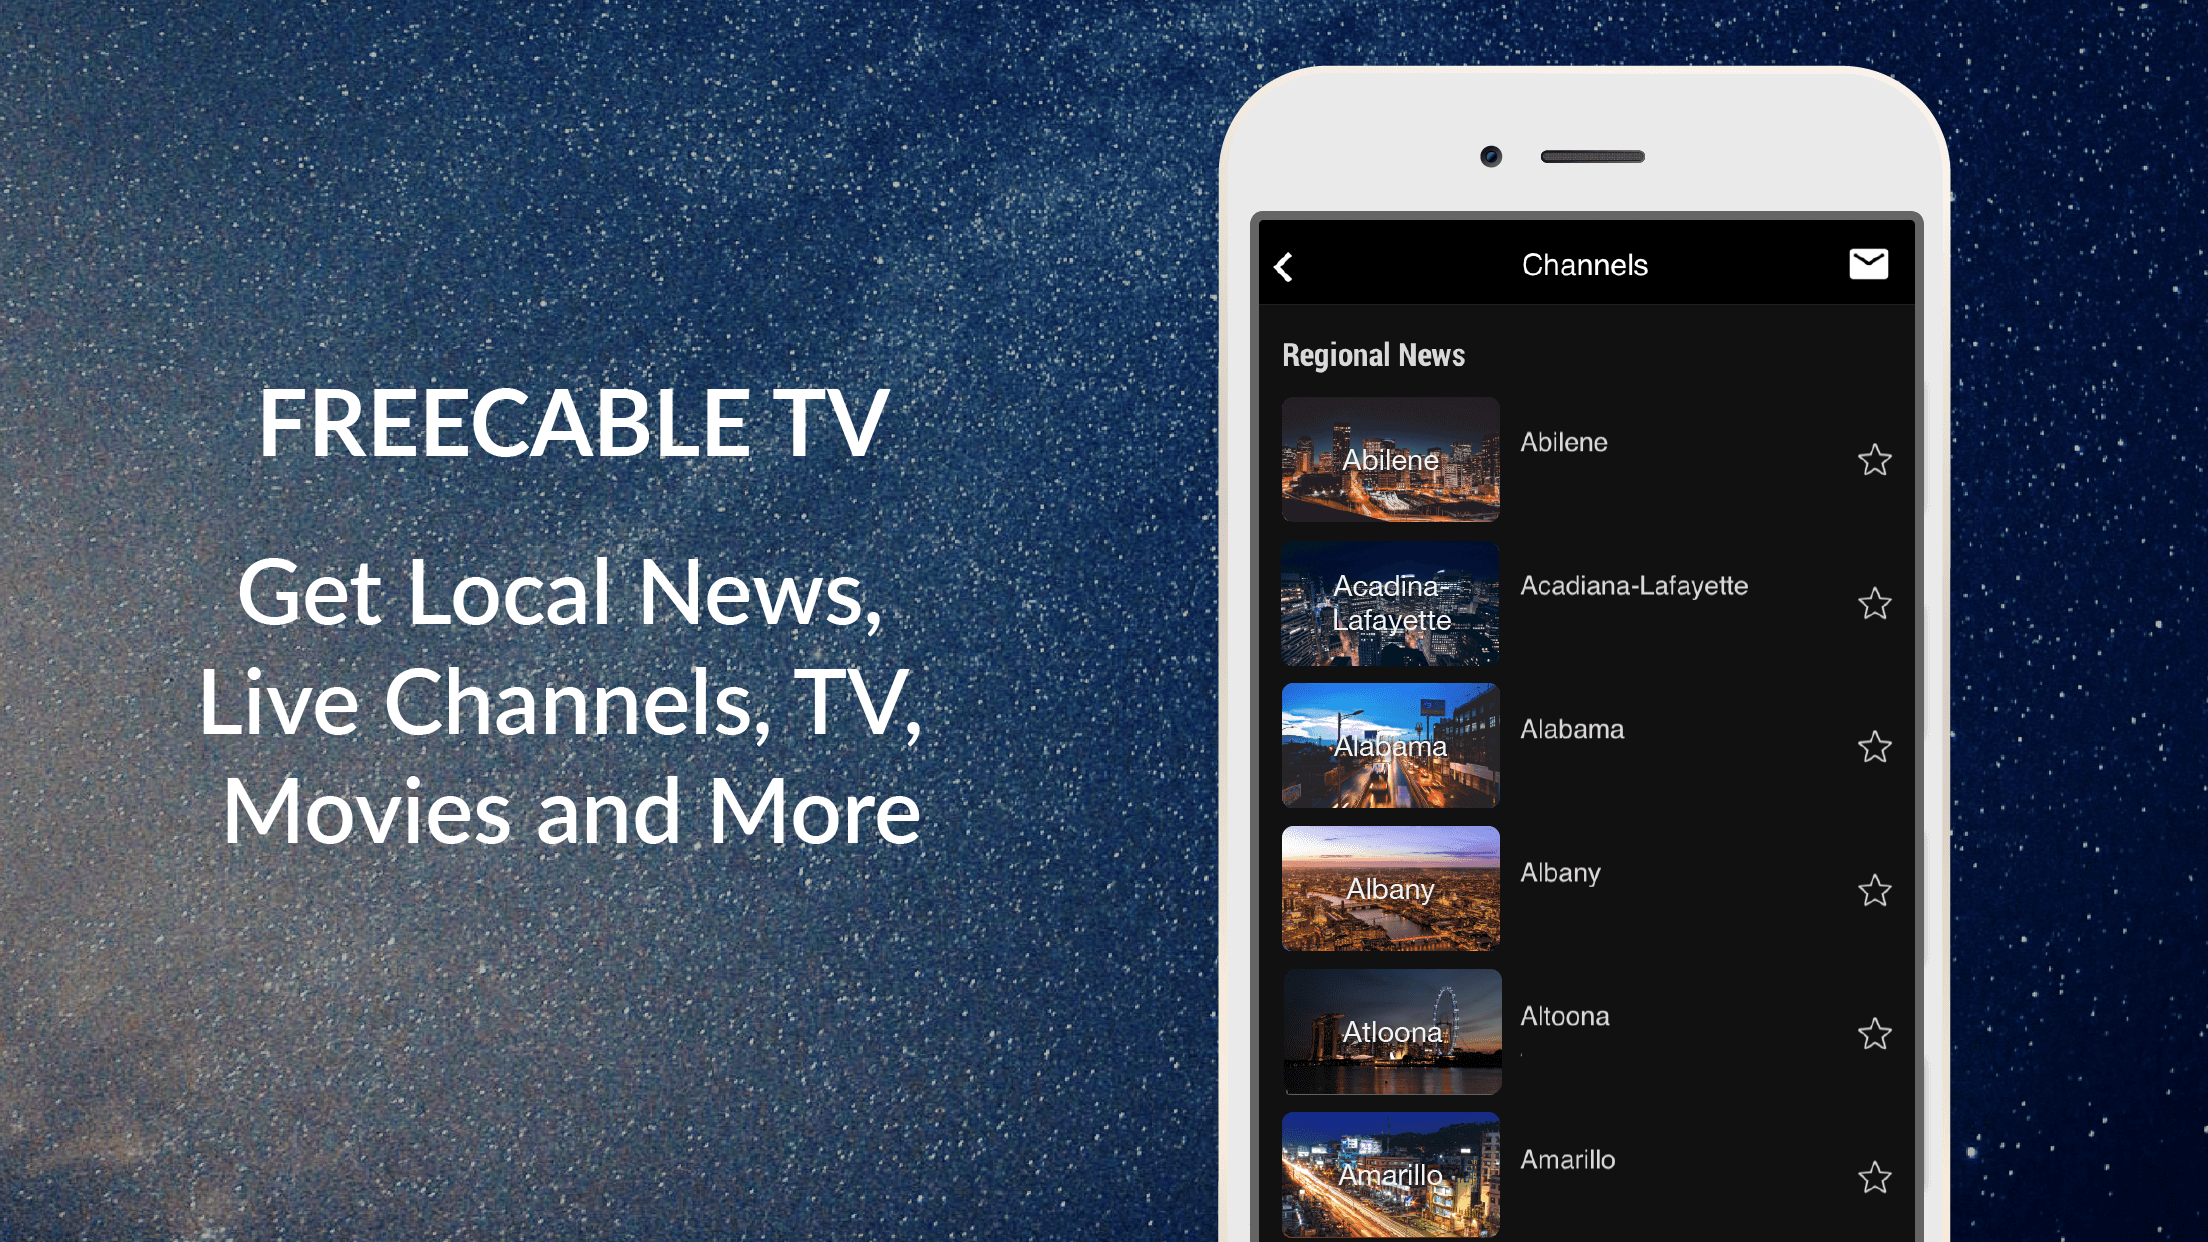 FREECABLE TV - Best Local News App